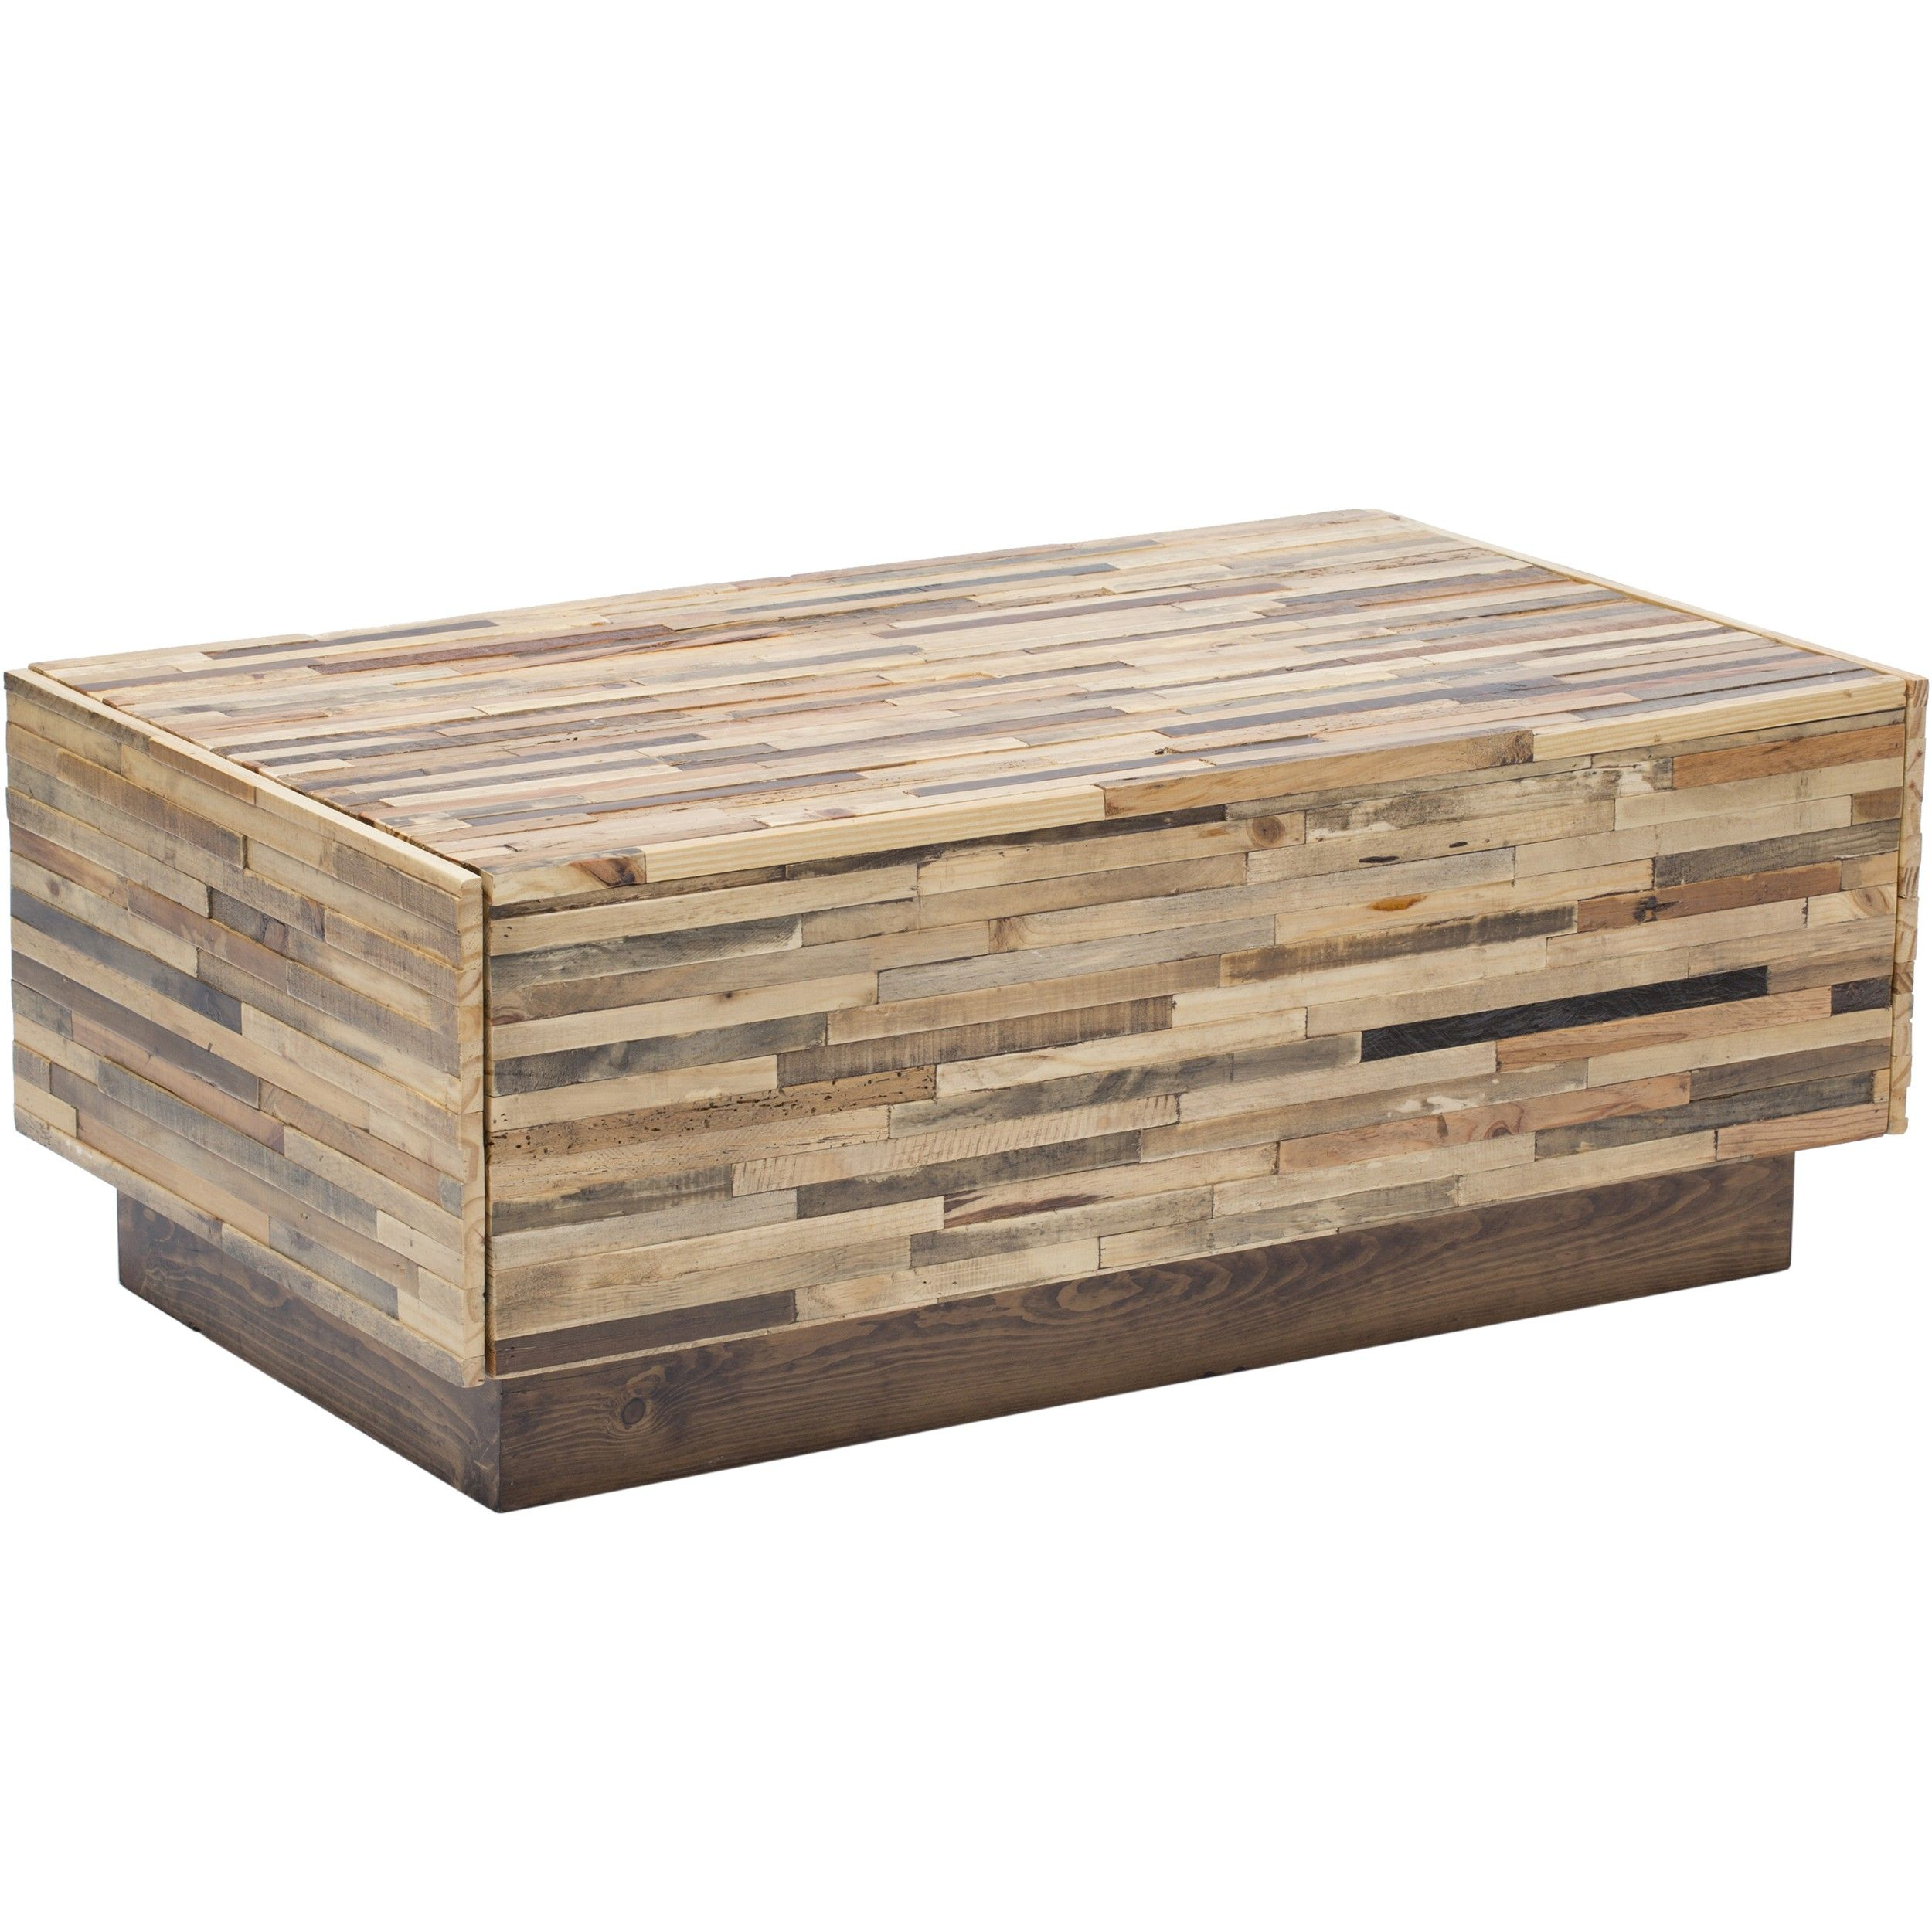 Caledonia Reclaimed Pine Wood 2 Drawer Coffee Table Furniture Accent Tables Coffee Tables